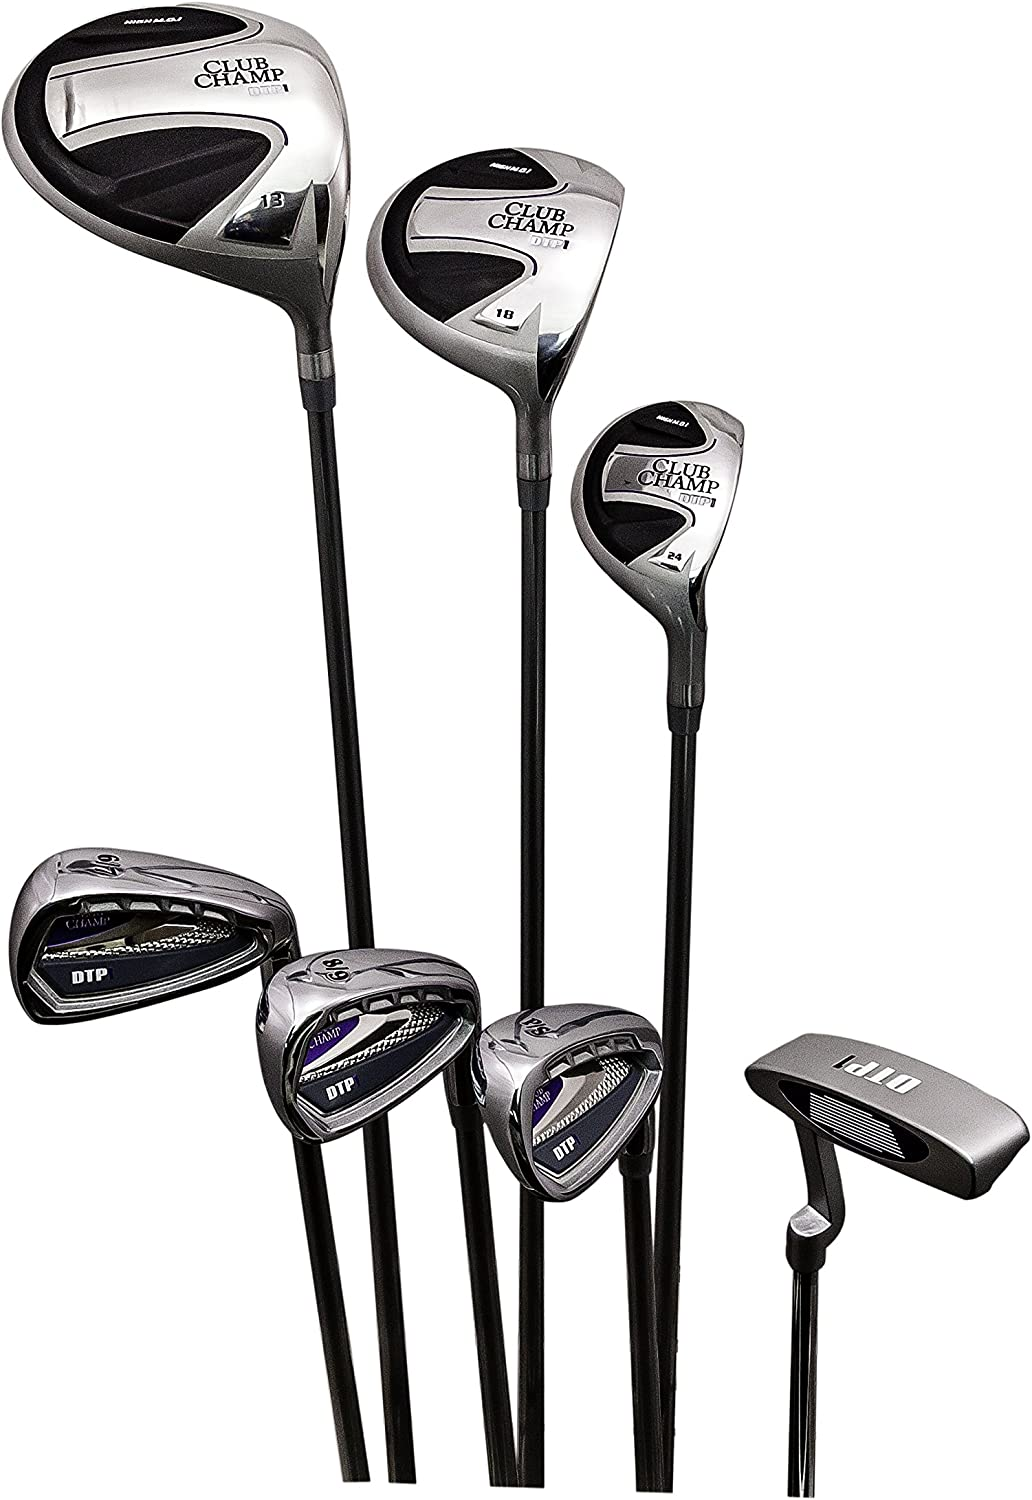 Club Champ Ladies Complete DTP (Designed to Play) Golf Club Set Right Hand